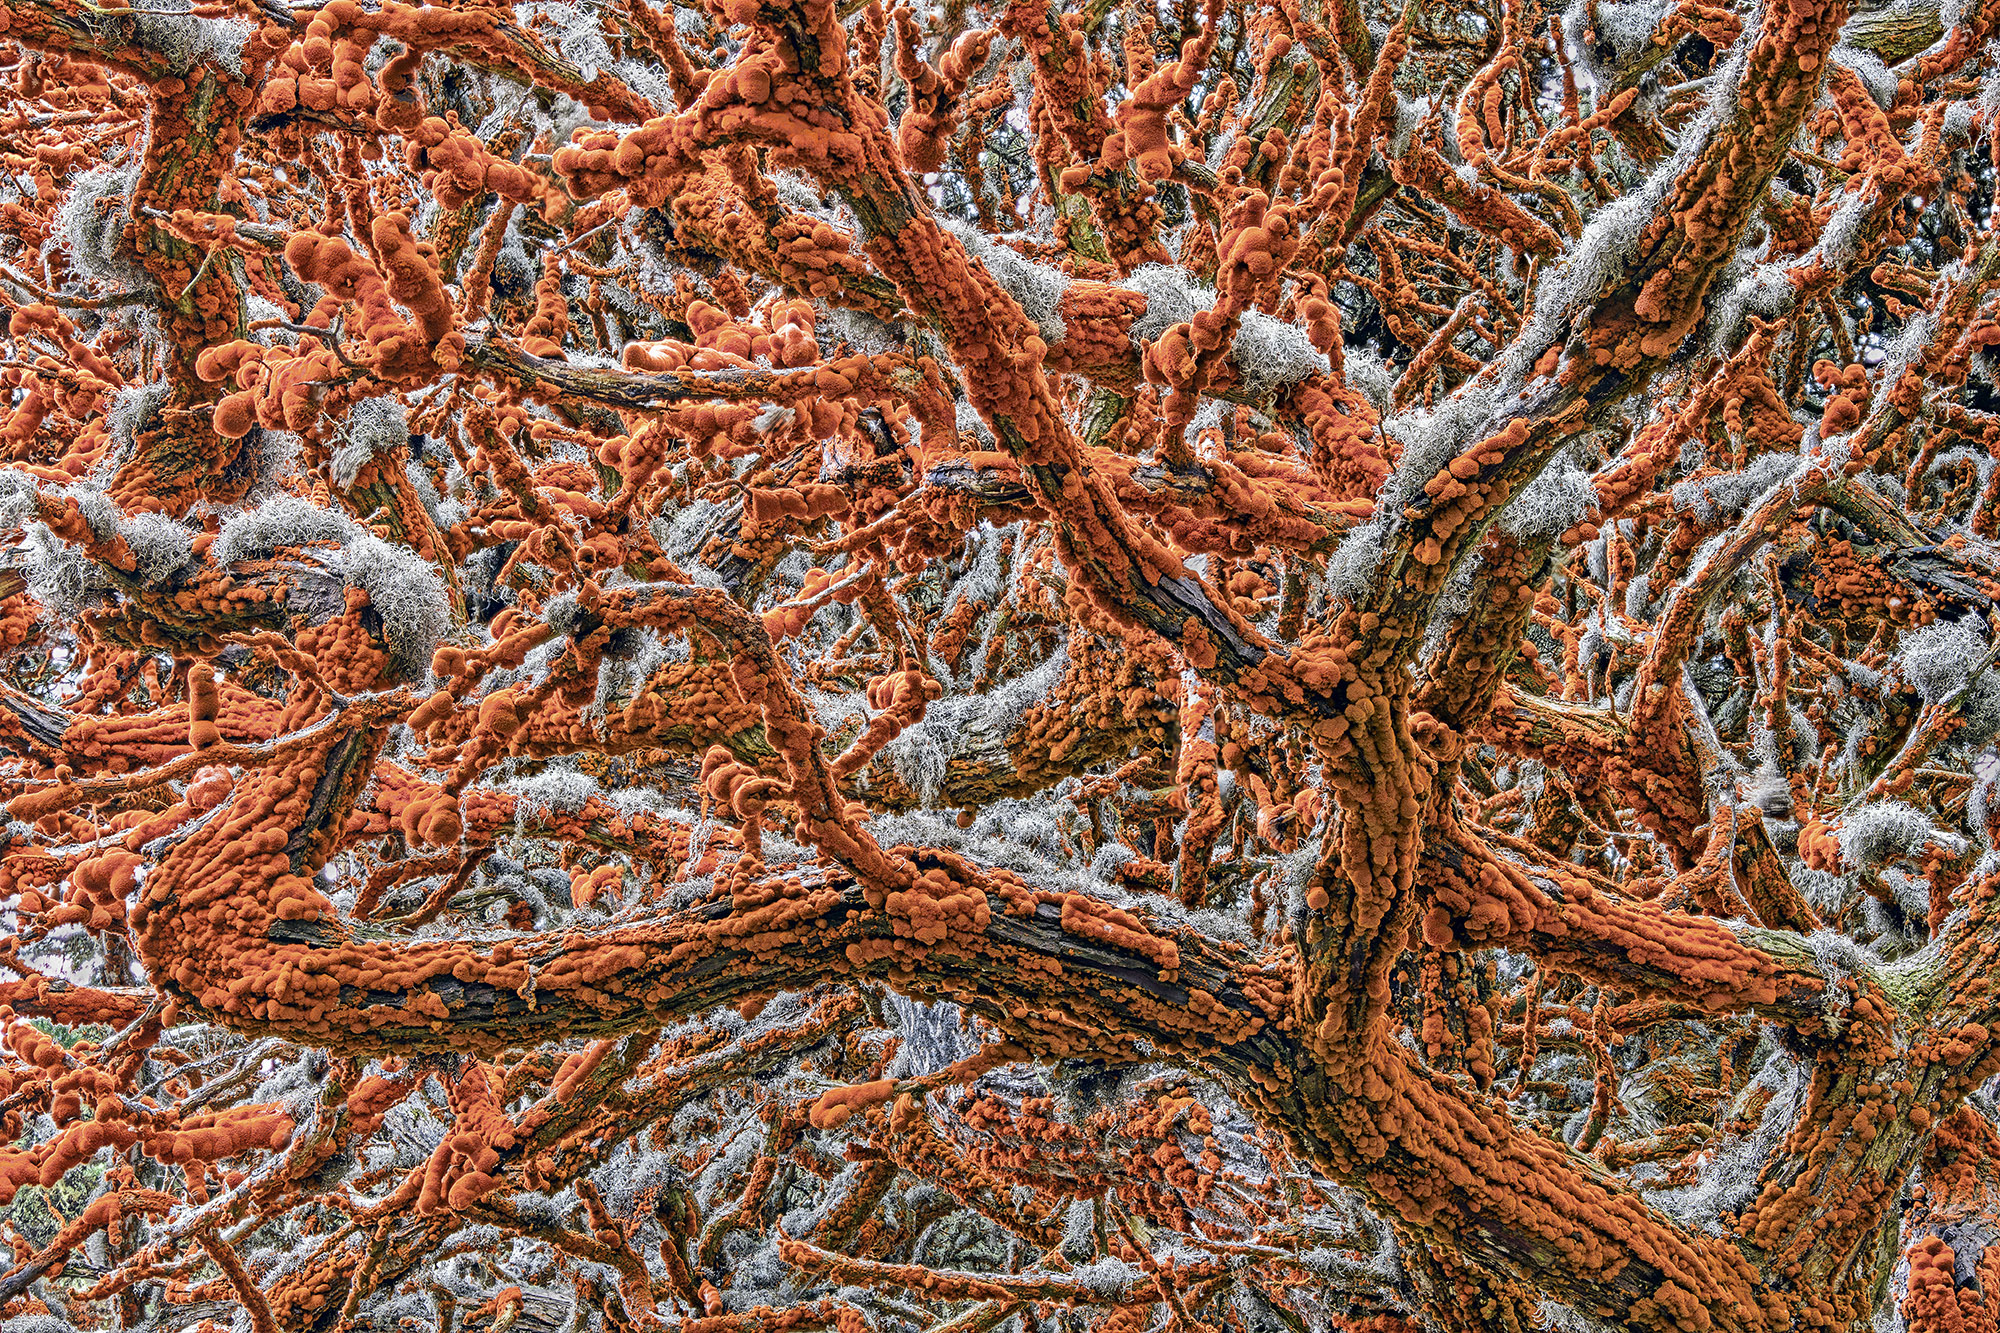 Festooned with bulging orange velvet and trimmed with grey lace, the arms of a Monterey cypress tree weave an otherworldly canopy over Pinnacle Point, in Point Lobos State Natural Reserve, California